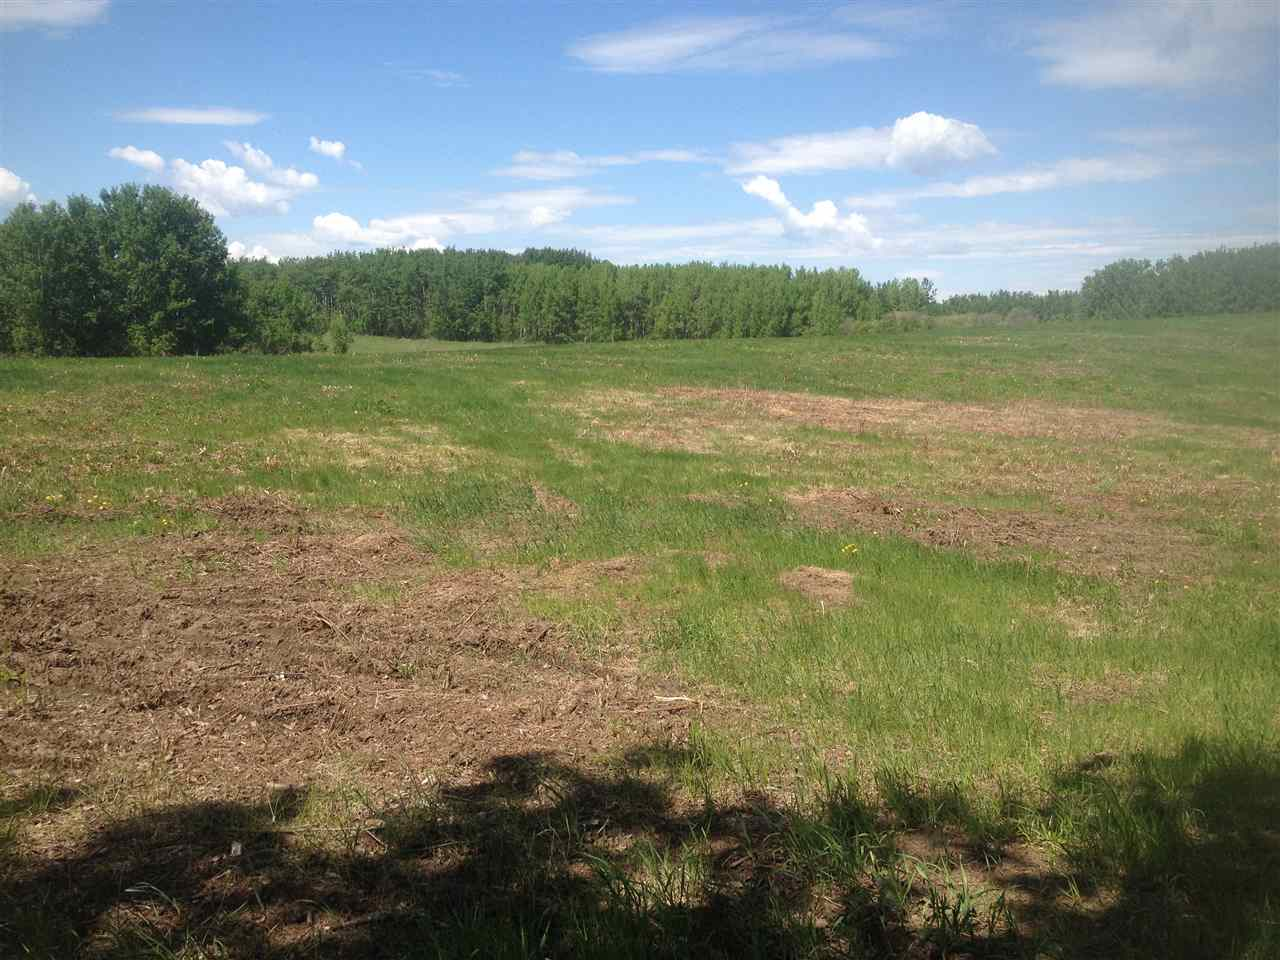 Photo 5: 52502 Range Road 22A: Rural Parkland County Rural Land/Vacant Lot for sale : MLS(r) # E4069524